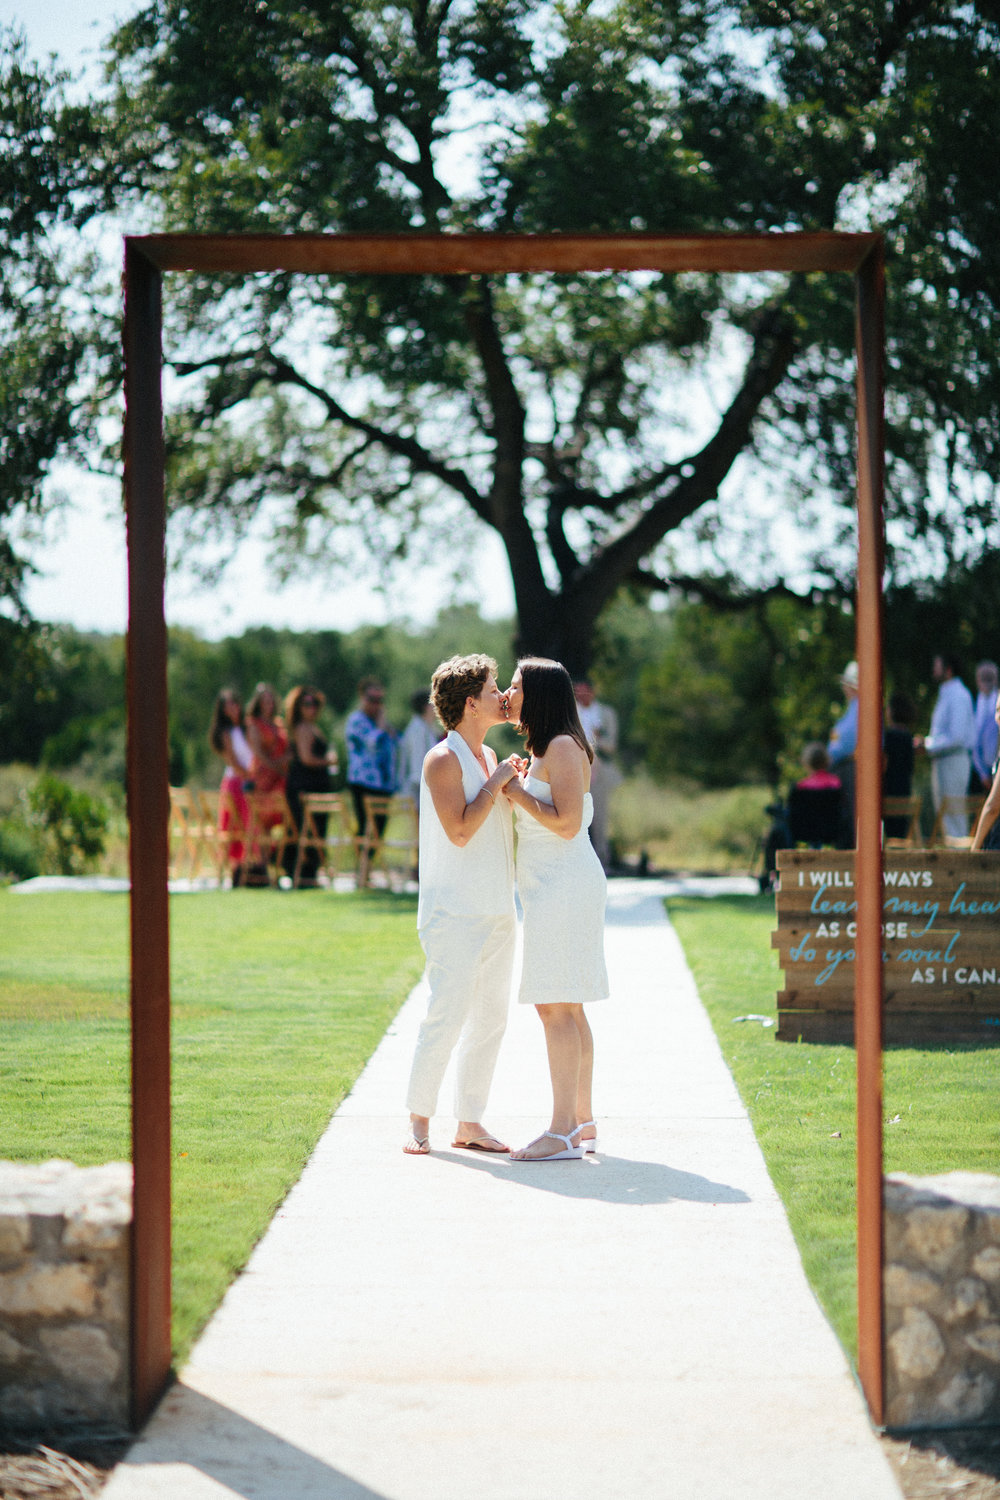 Paige-Newton-Wedding-Photography-Hill-Country-Same-Sex-Wedding.jpg